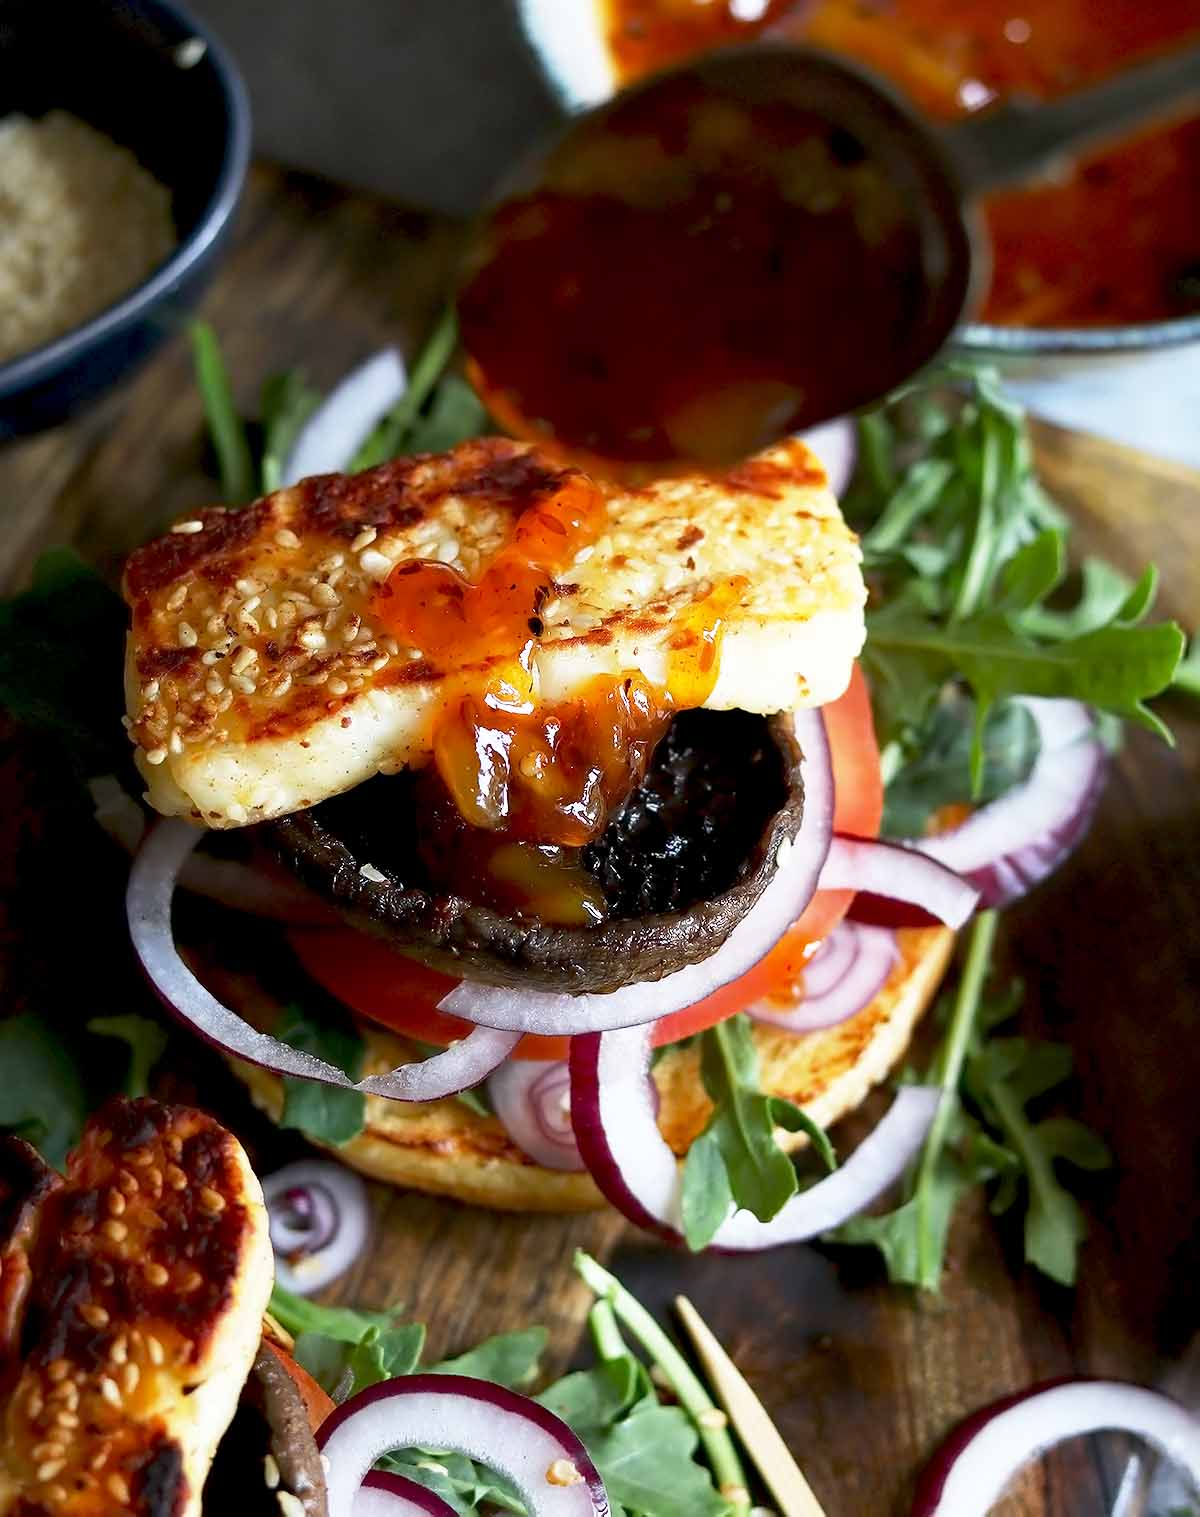 Halloumi, with mushrooms, topped with red onion, rocket, coriander and spicy mango chutney in a brioche bun.